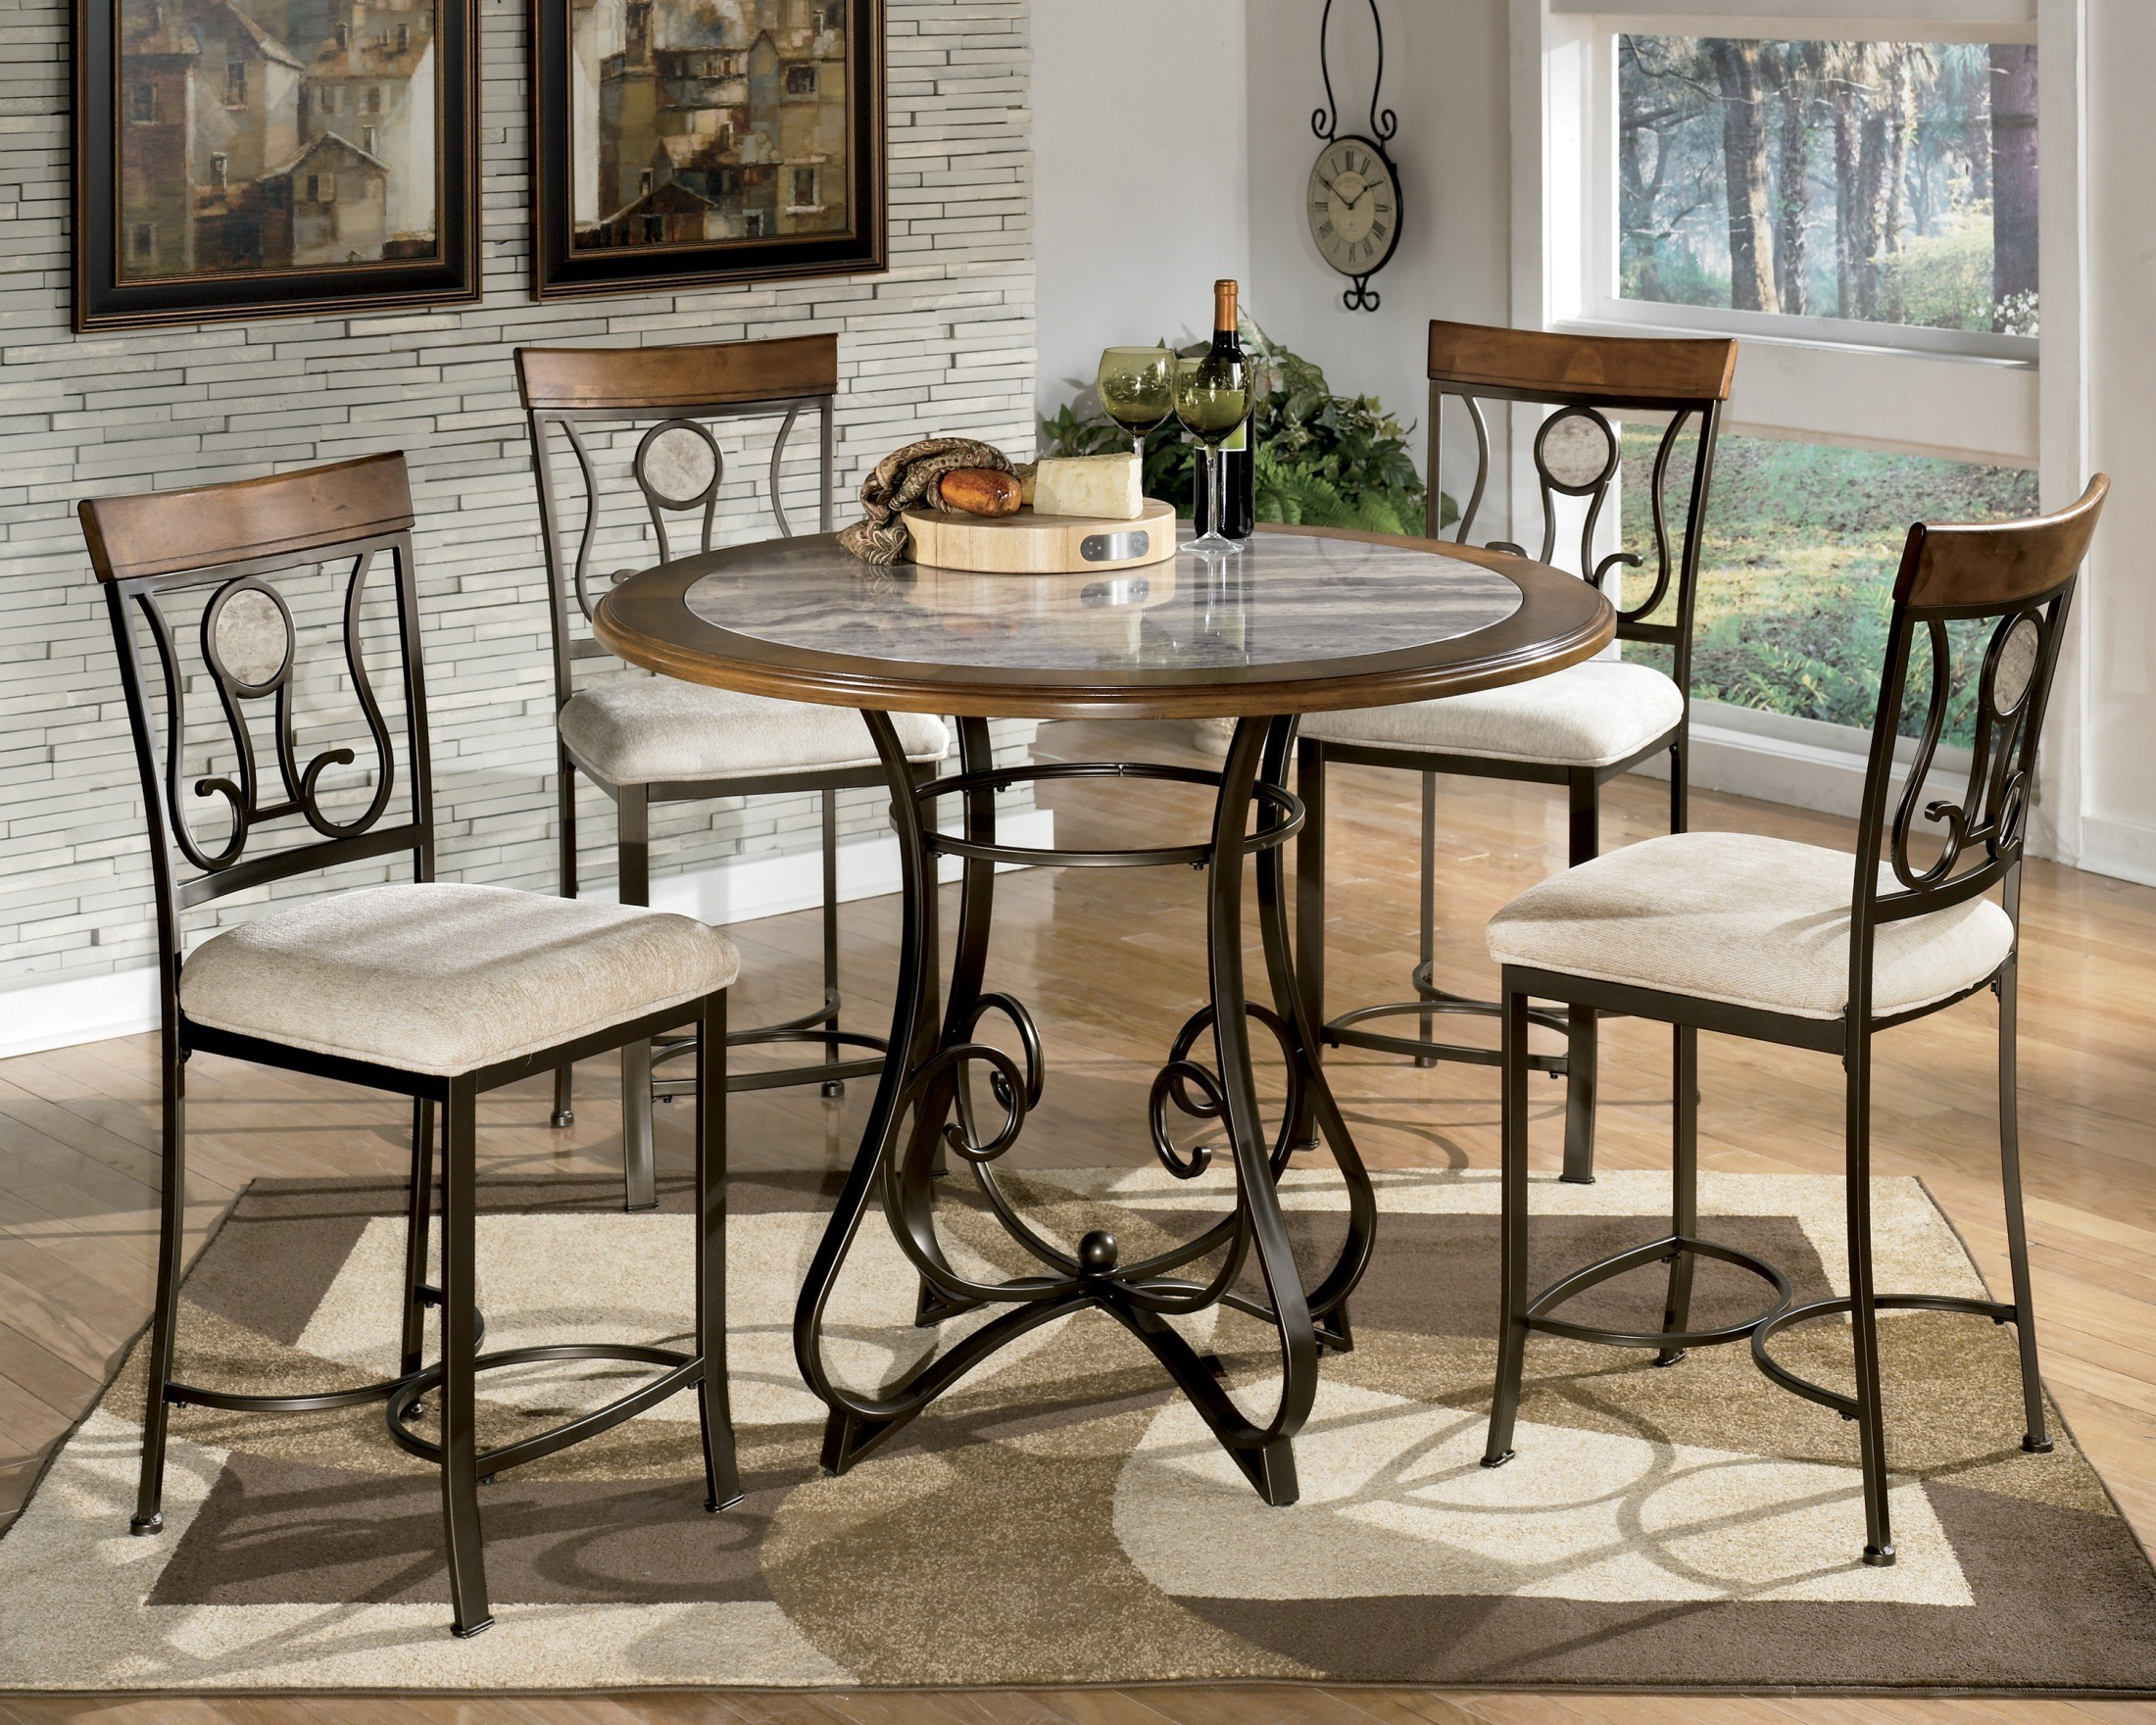 Widely Used Dallin Bar Height Dining Tables Inside Hopstand Round Counter Height Dining Table, D314 13t B (View 4 of 20)